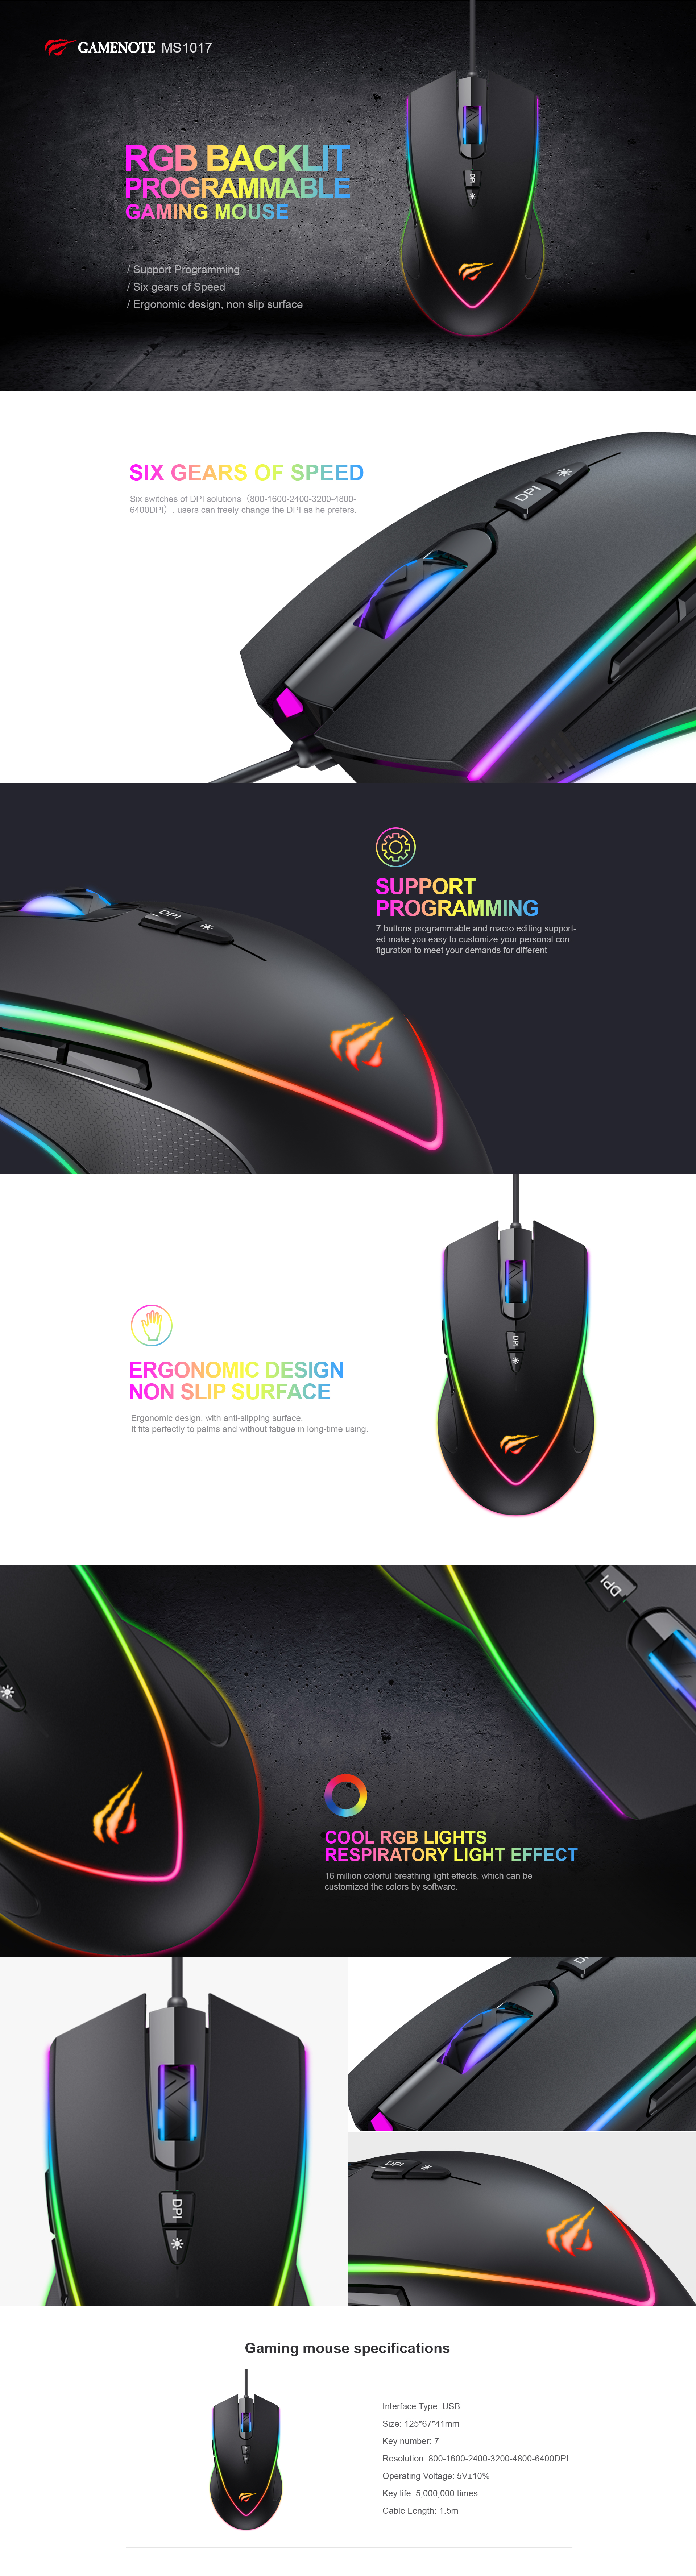 Havit Mouse Software : havit, mouse, software, MS1017, Backlit, Gaming, Mouse, HAVIT, Official, Website